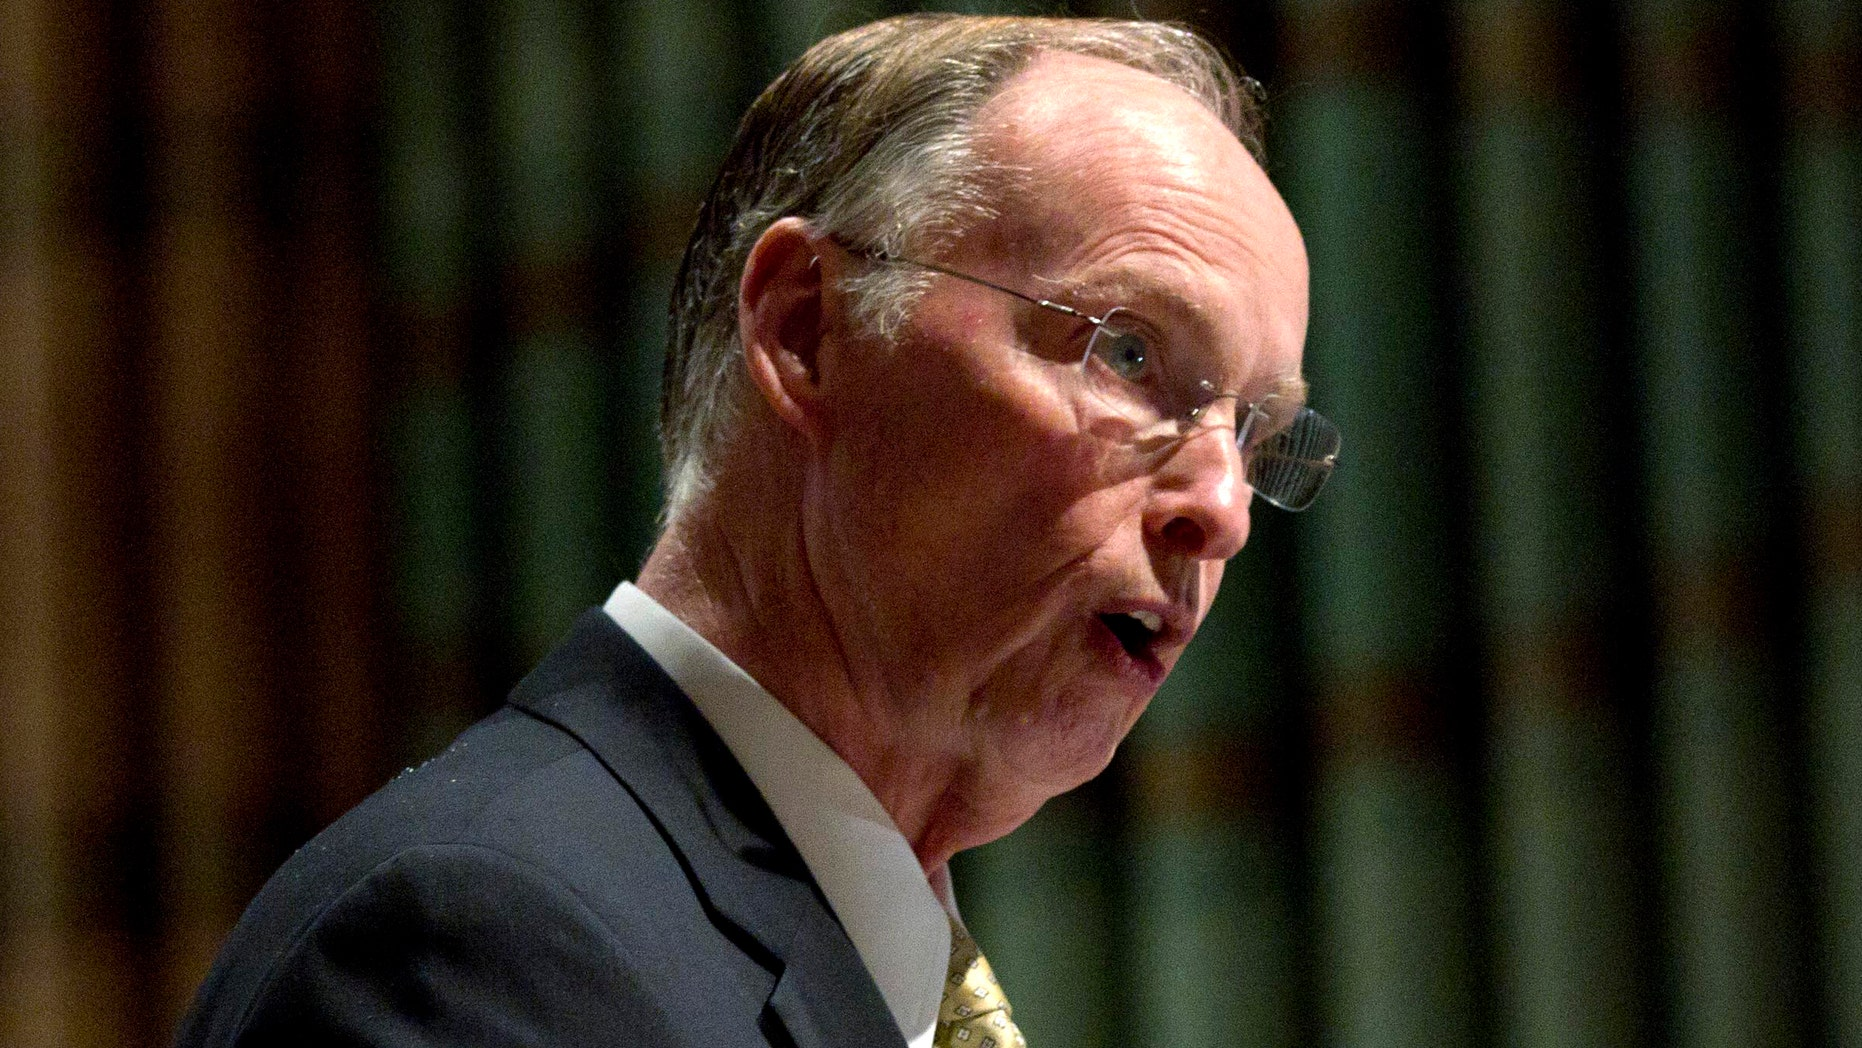 FILE - In this May 3, 2012 file photo, Alabama Gov. Robert Bentley speaks in Montgomery, Ala. While Mitt Romney faults President Barack Obama for a weak American economy, Republican governors across the country are merrily trumpeting tales of business growth and falling employment.    (AP Photo/Dave Martin, File)